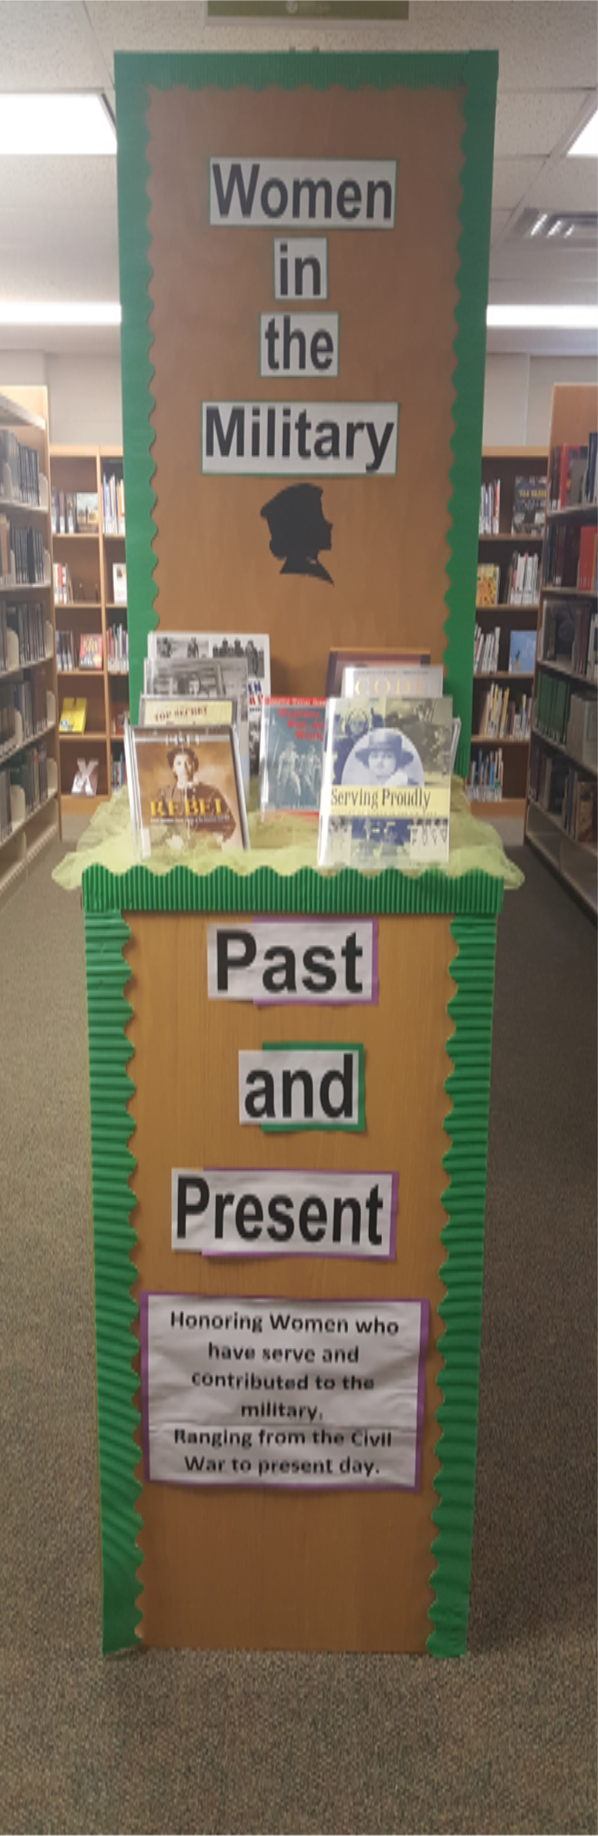 Women's History Month Display:  Women in the Military